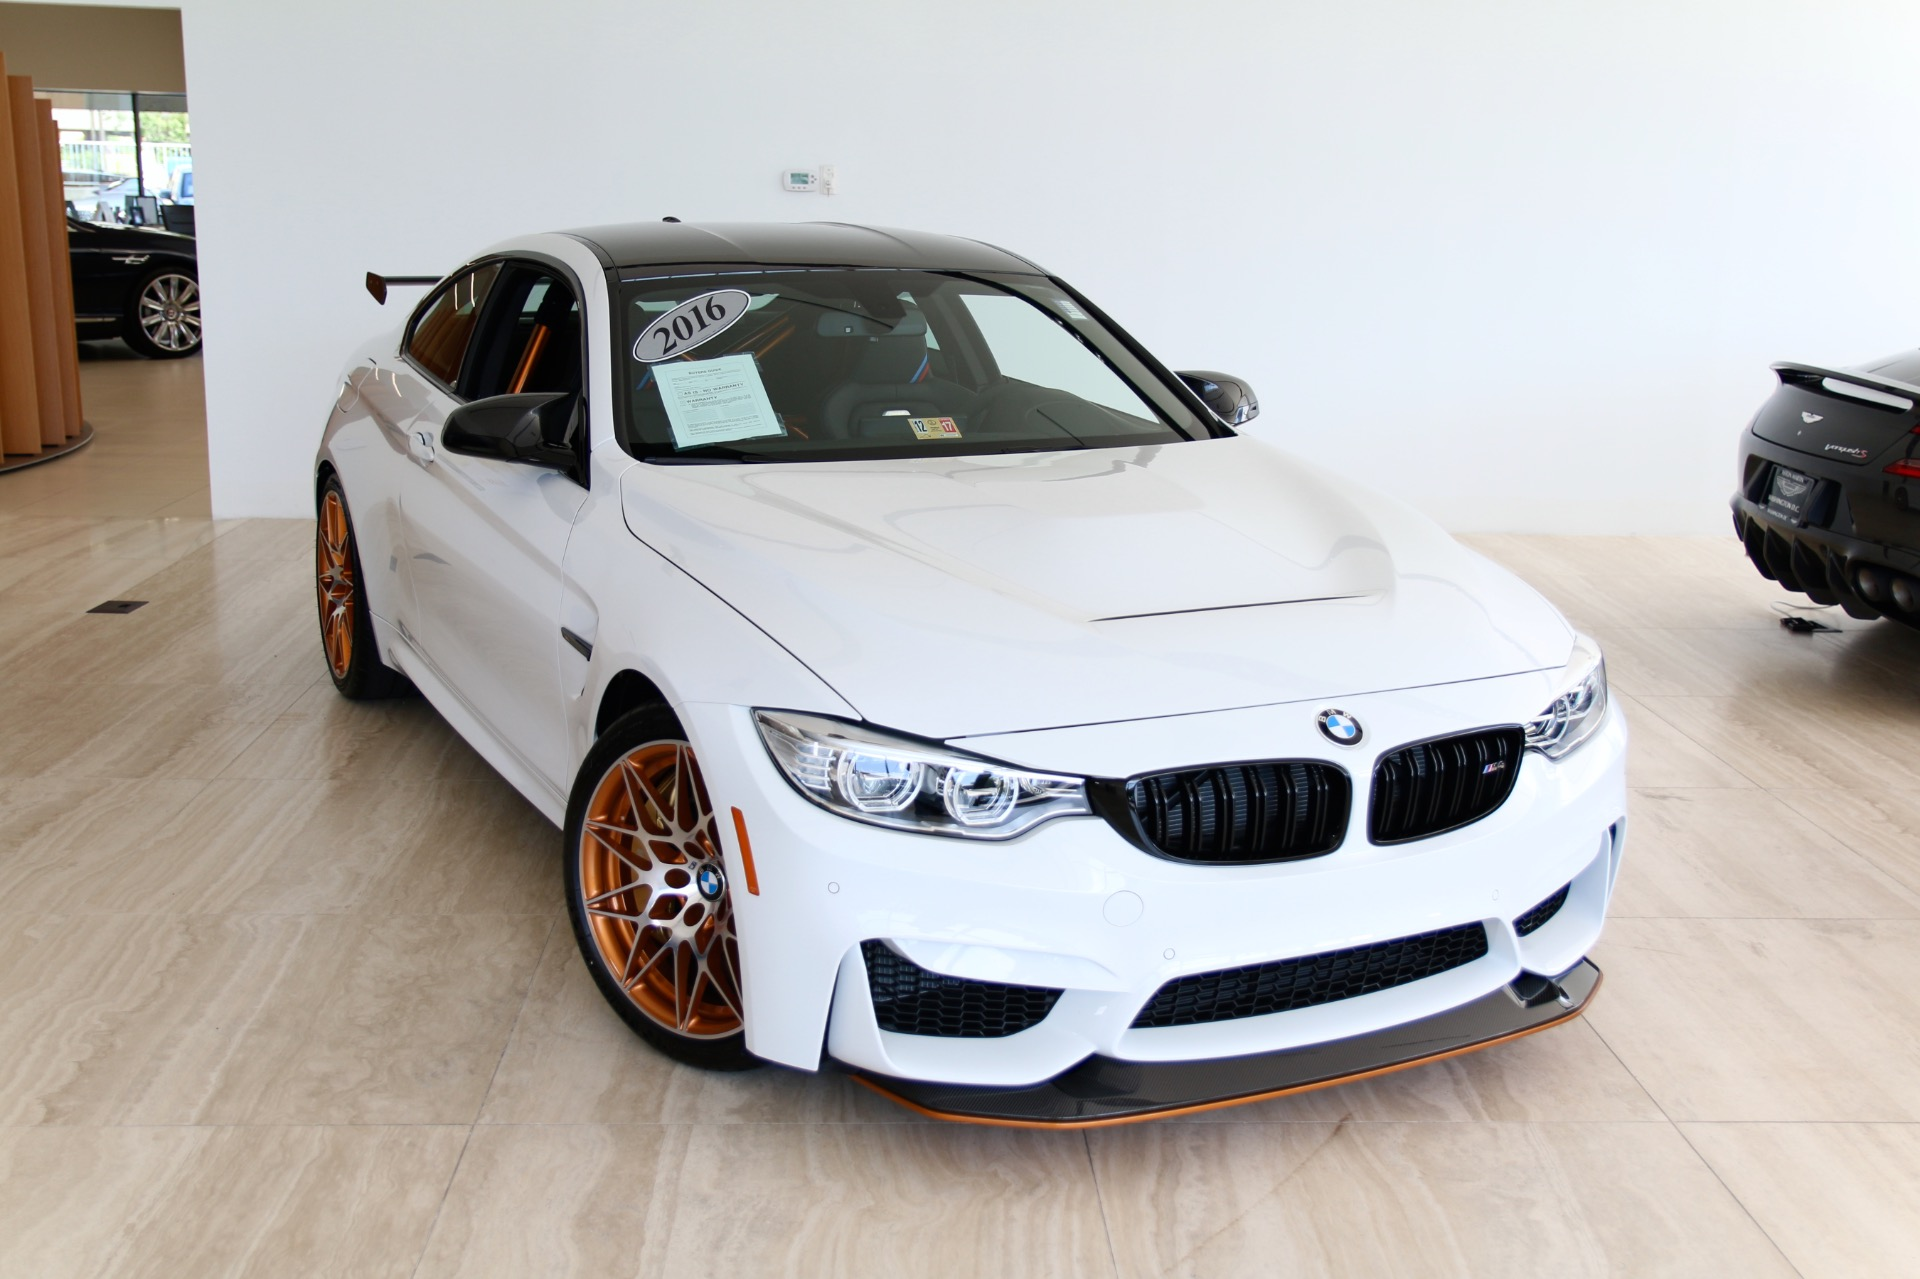 2016 bmw m4 gts gts stock p578983 for sale near vienna va va bmw dealer for sale in vienna. Black Bedroom Furniture Sets. Home Design Ideas